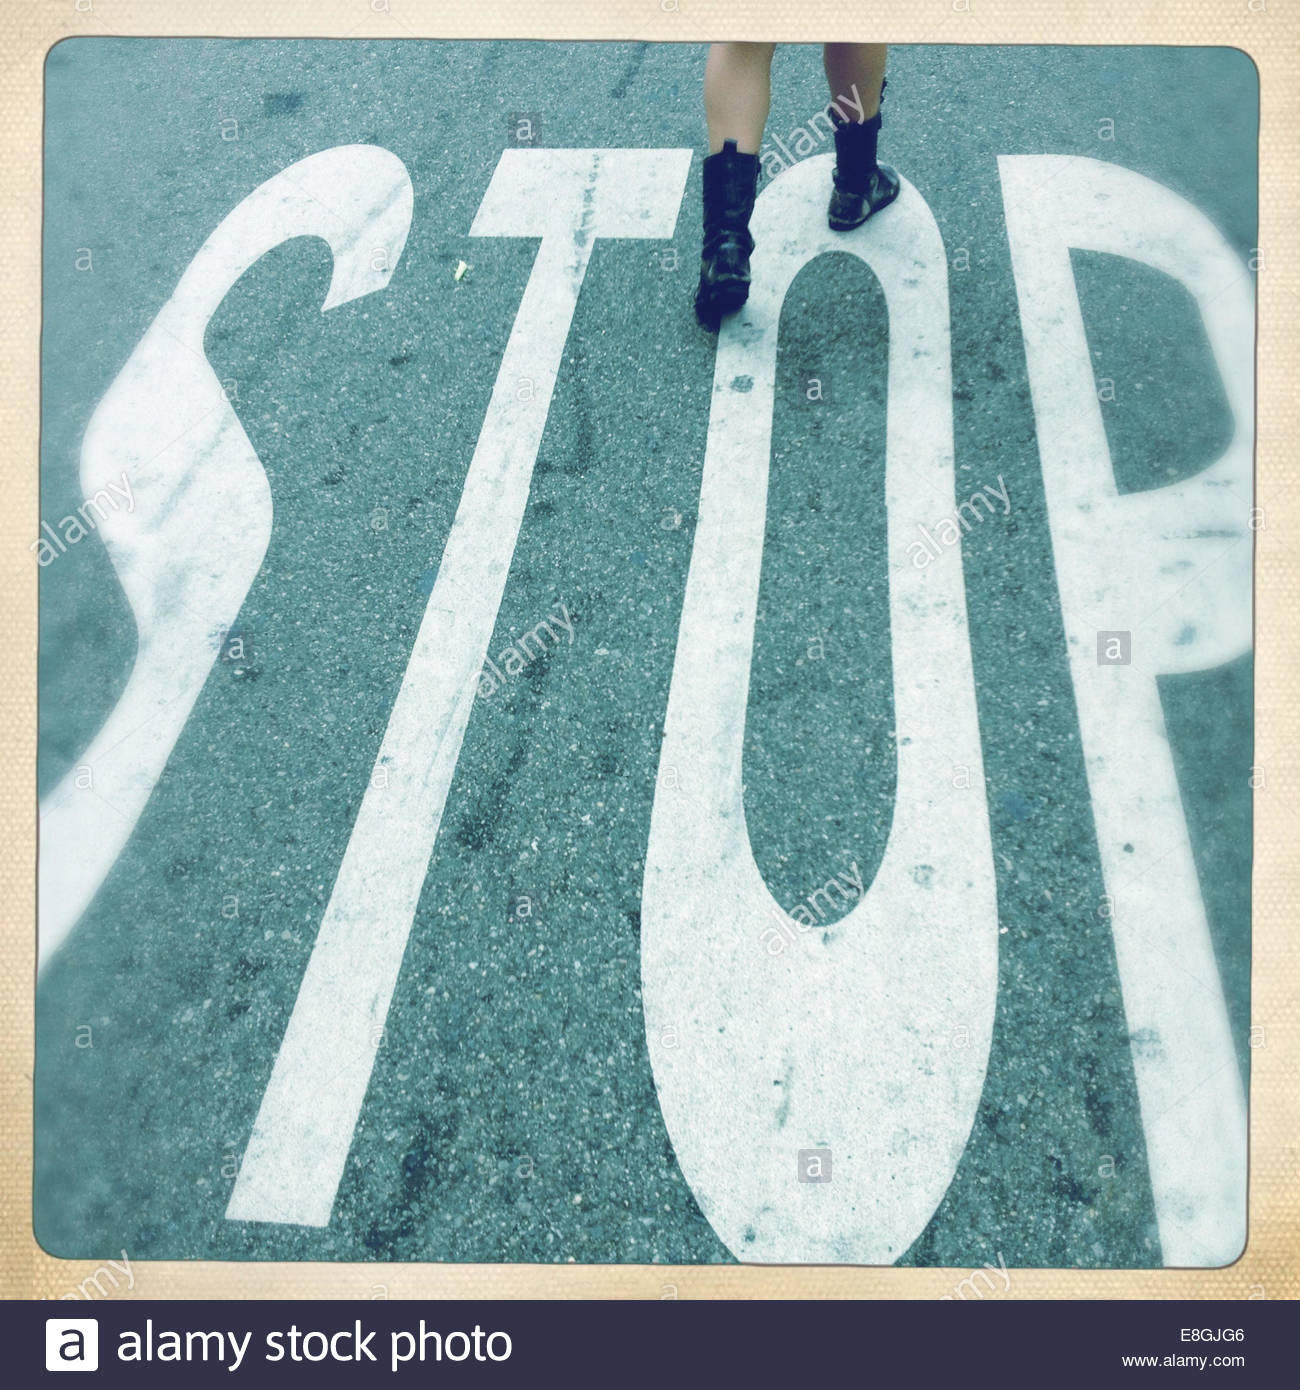 Stop warning printed on road - Stock Image